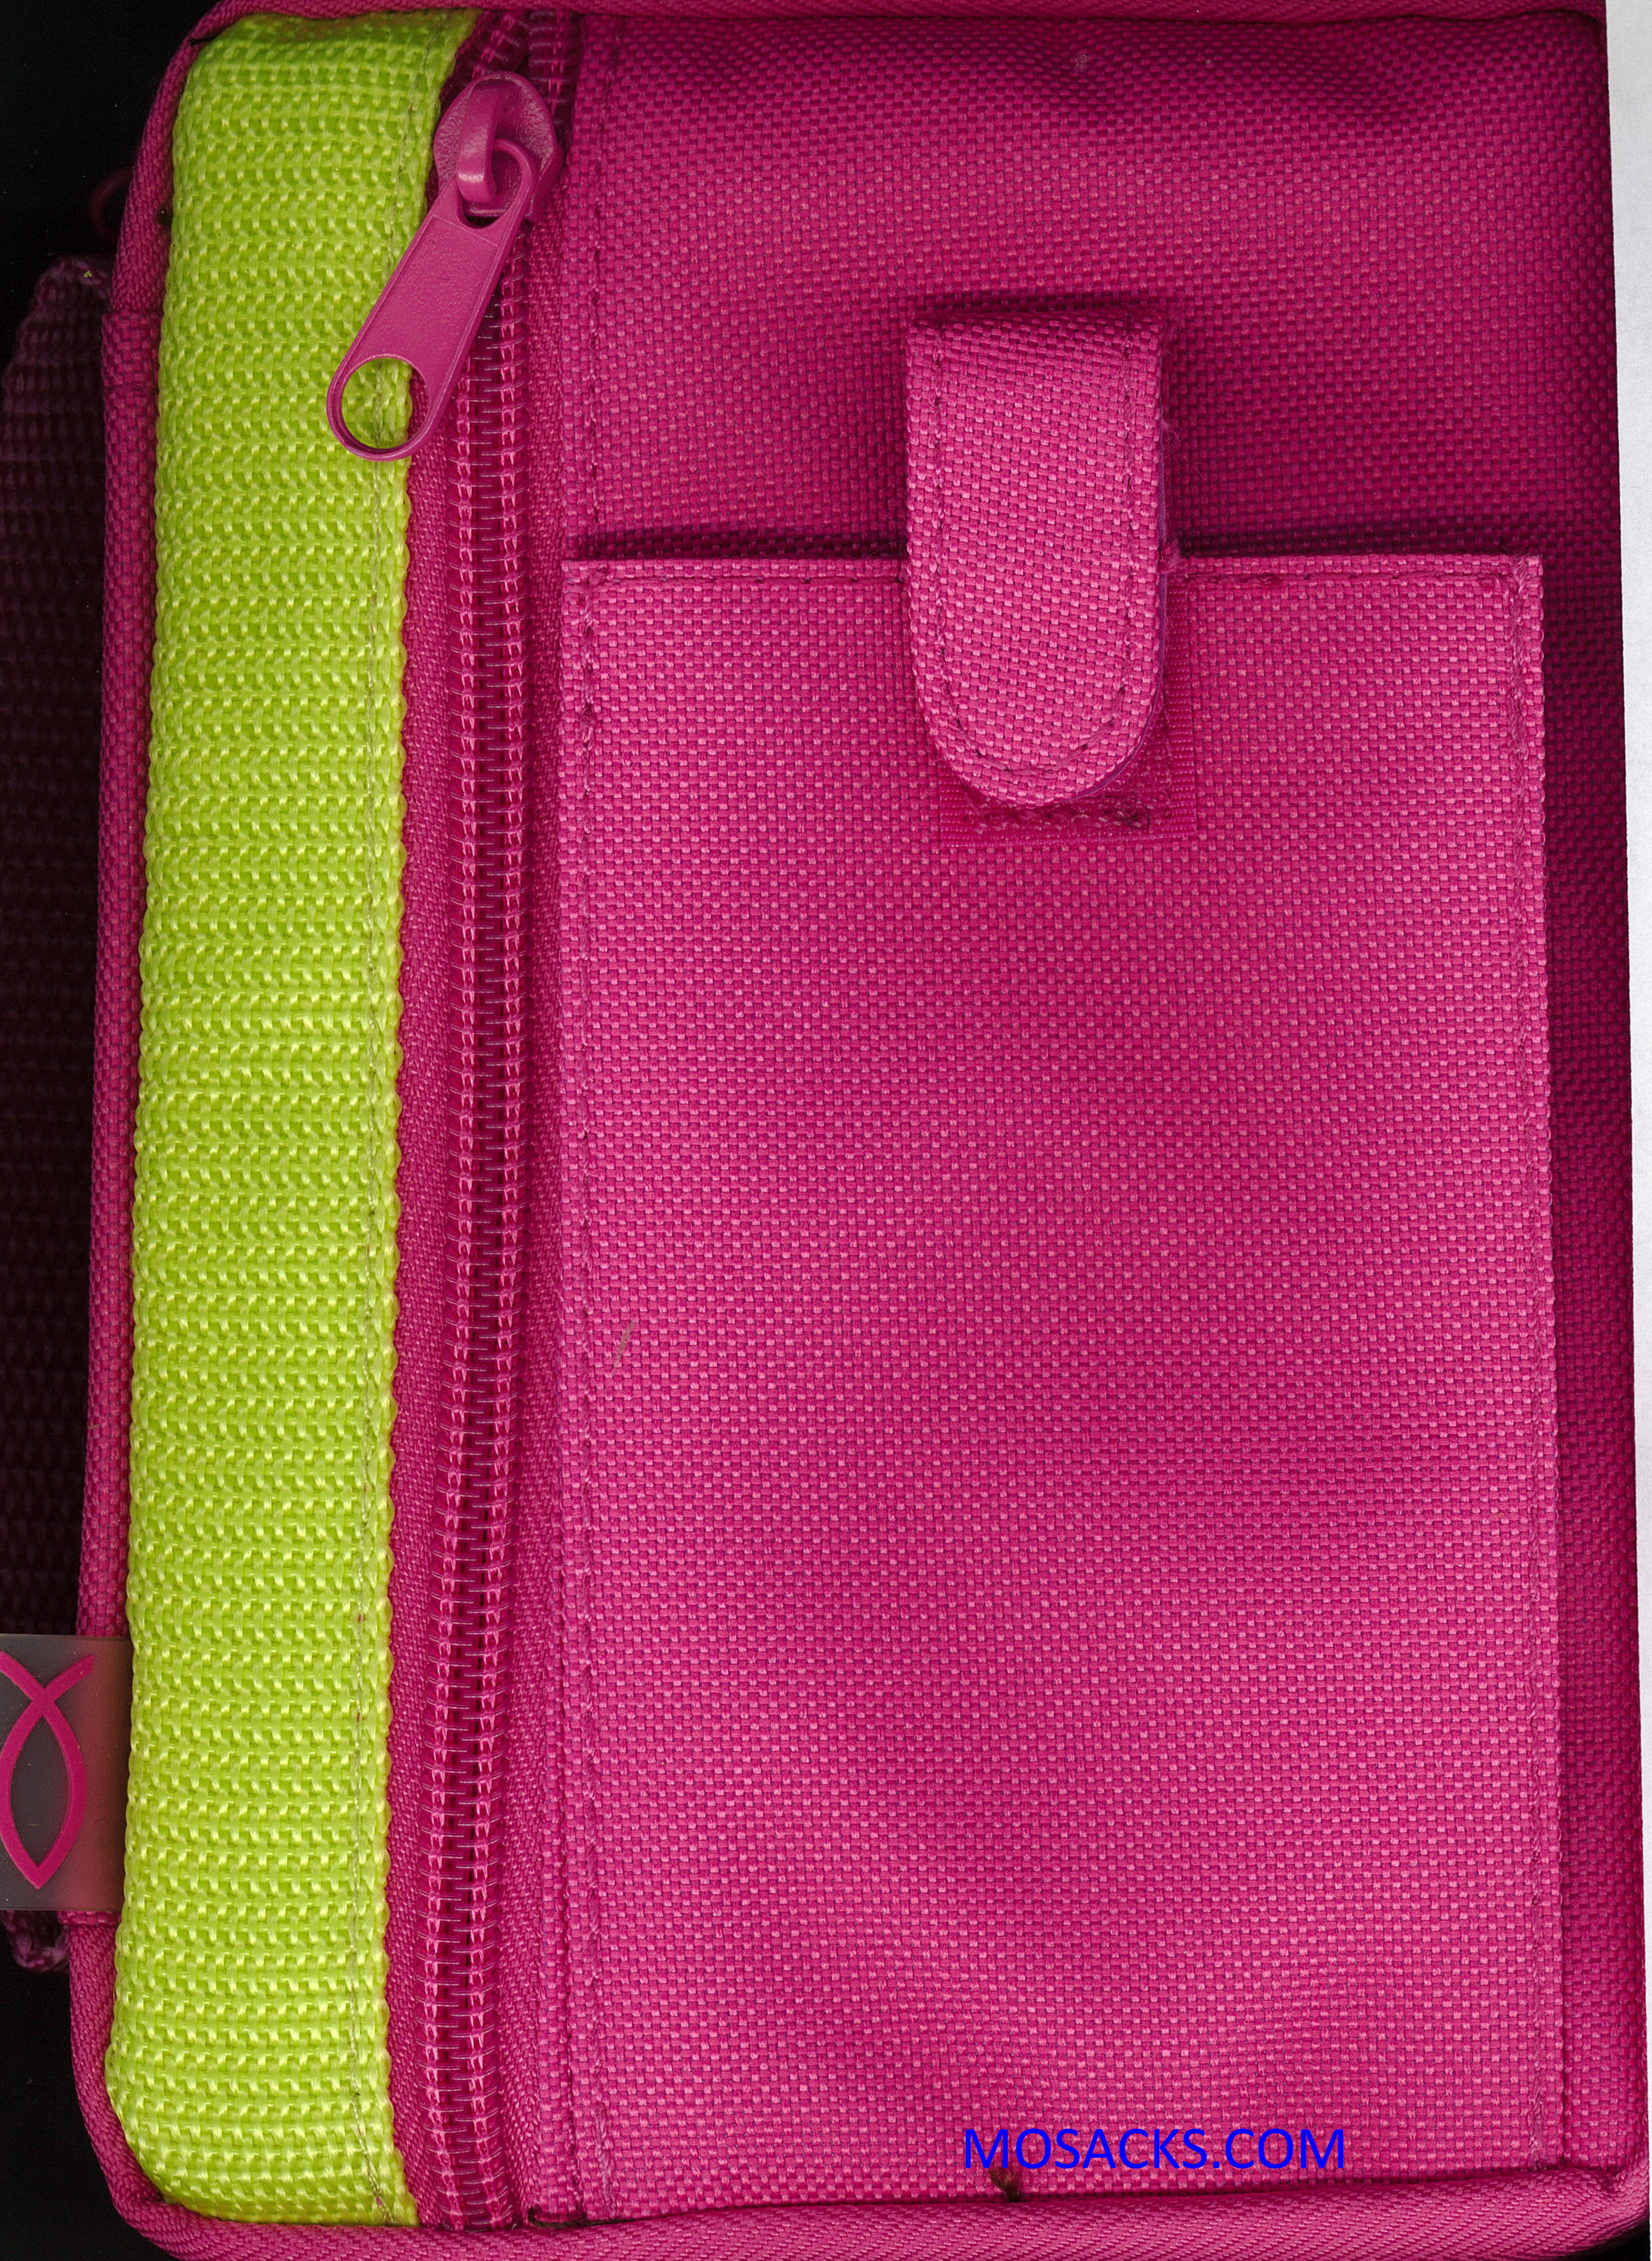 Fuchsia with Green XS Bible Cover-79643714104